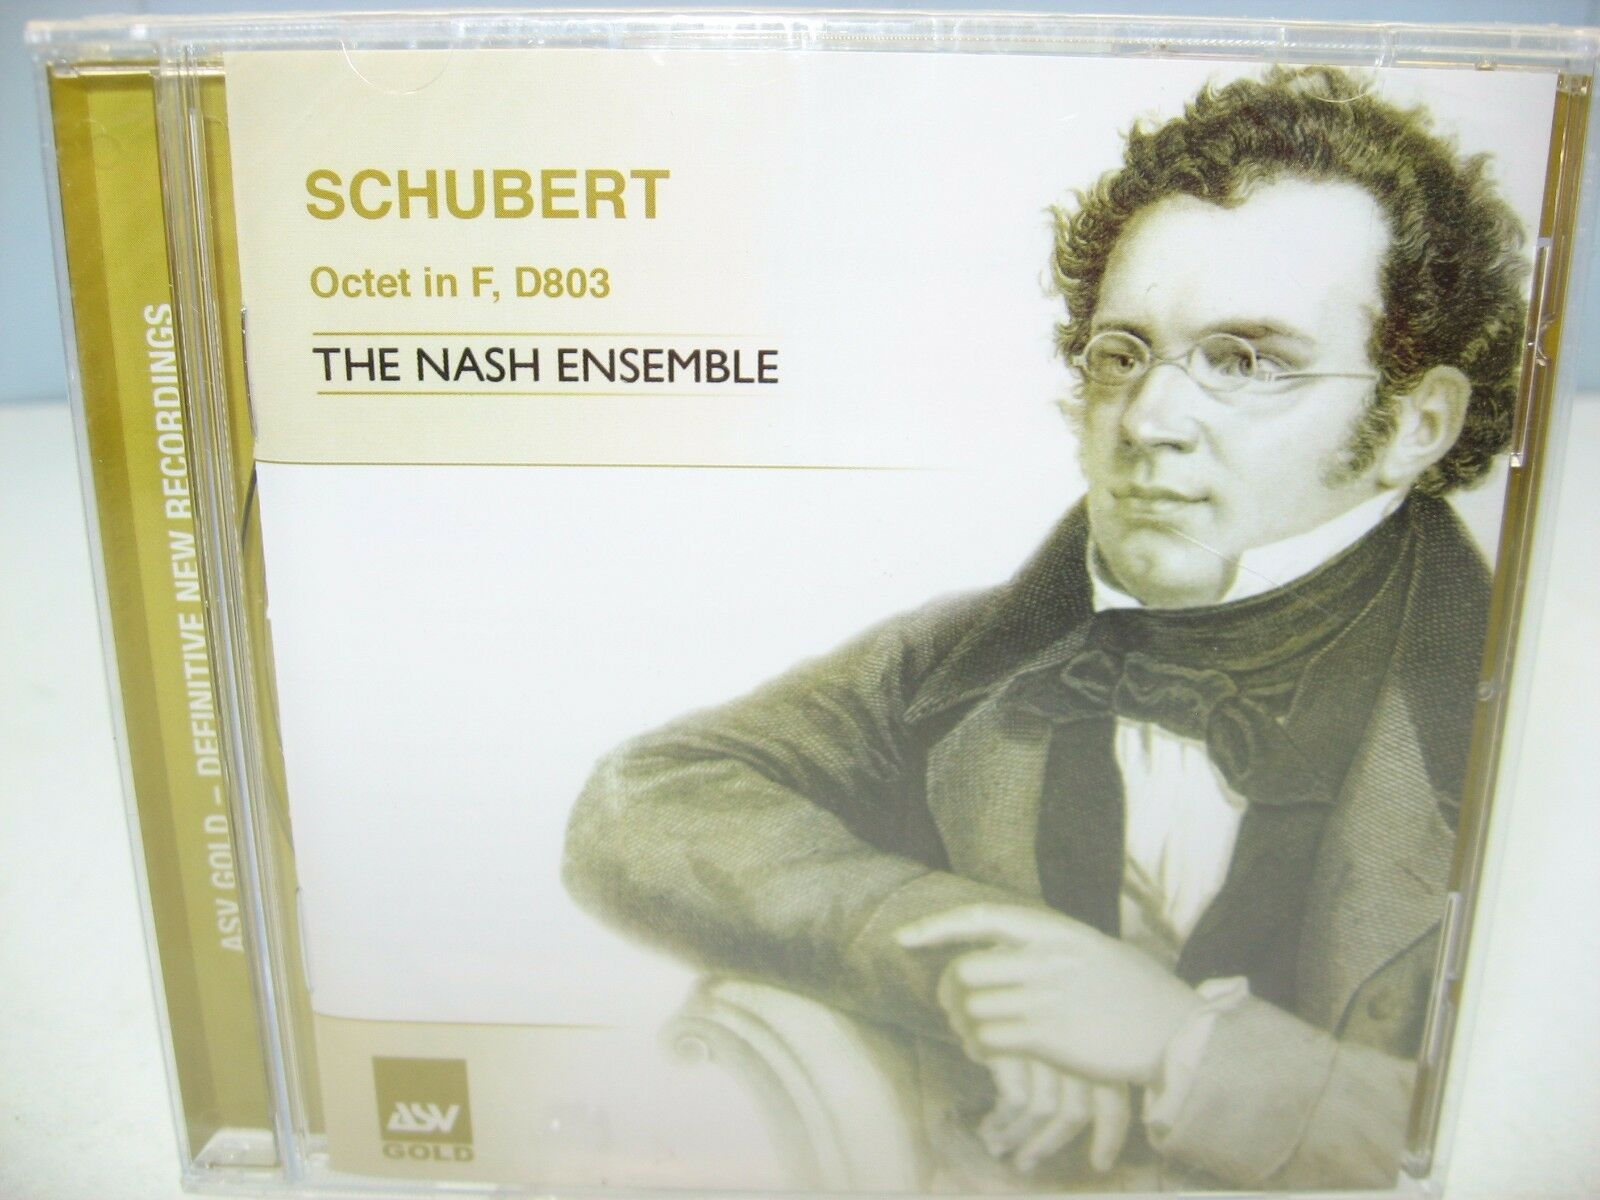 Schubert: Octet in F, D803 (CD, Jan-2005, ASV)